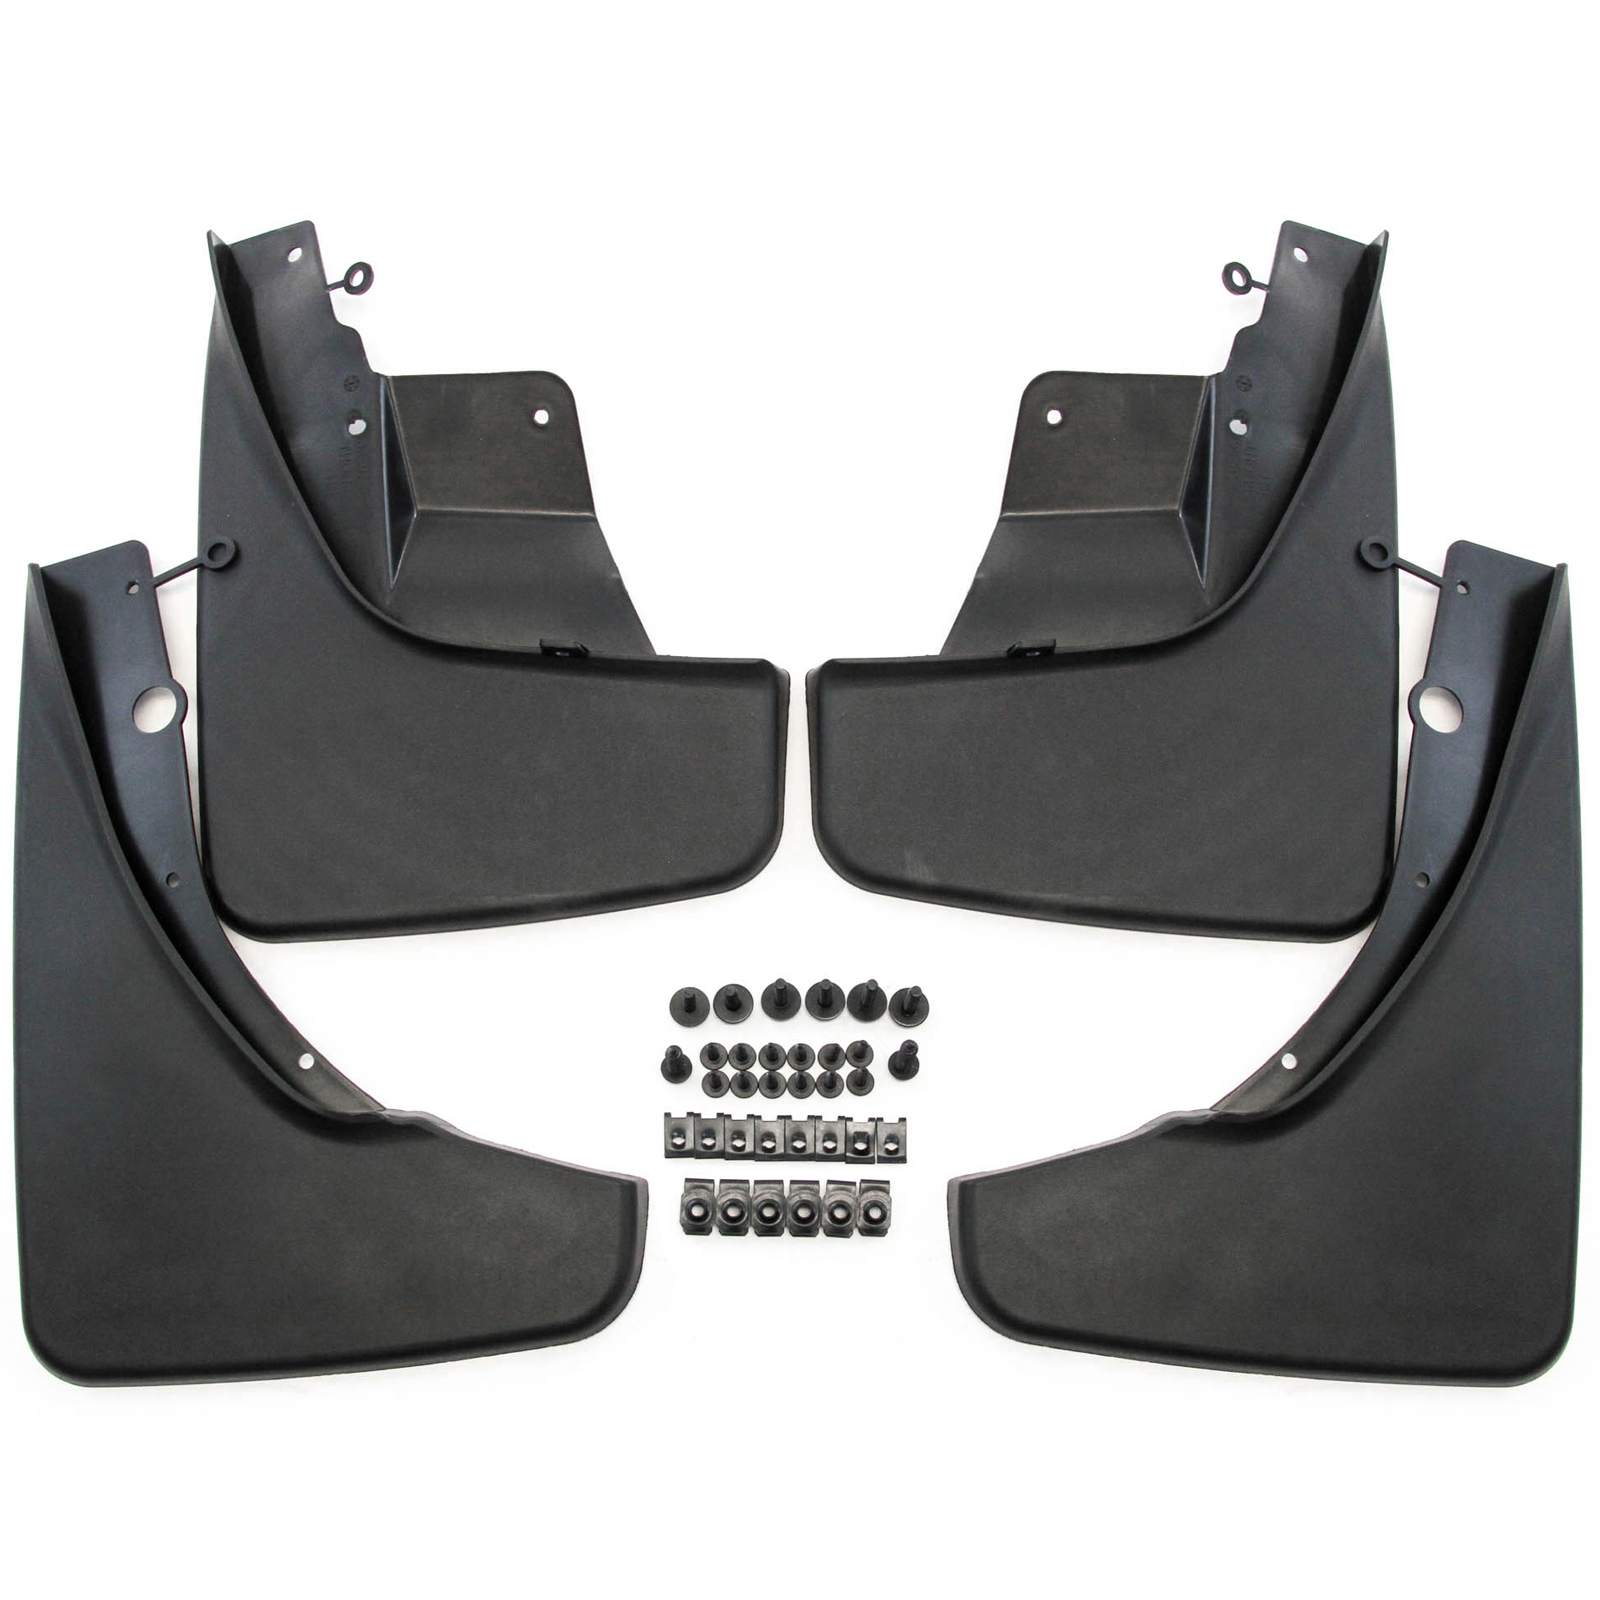 Husky Liners 58121 Black Front Mud Guards Fits 2014-18 Jeep Cherokee